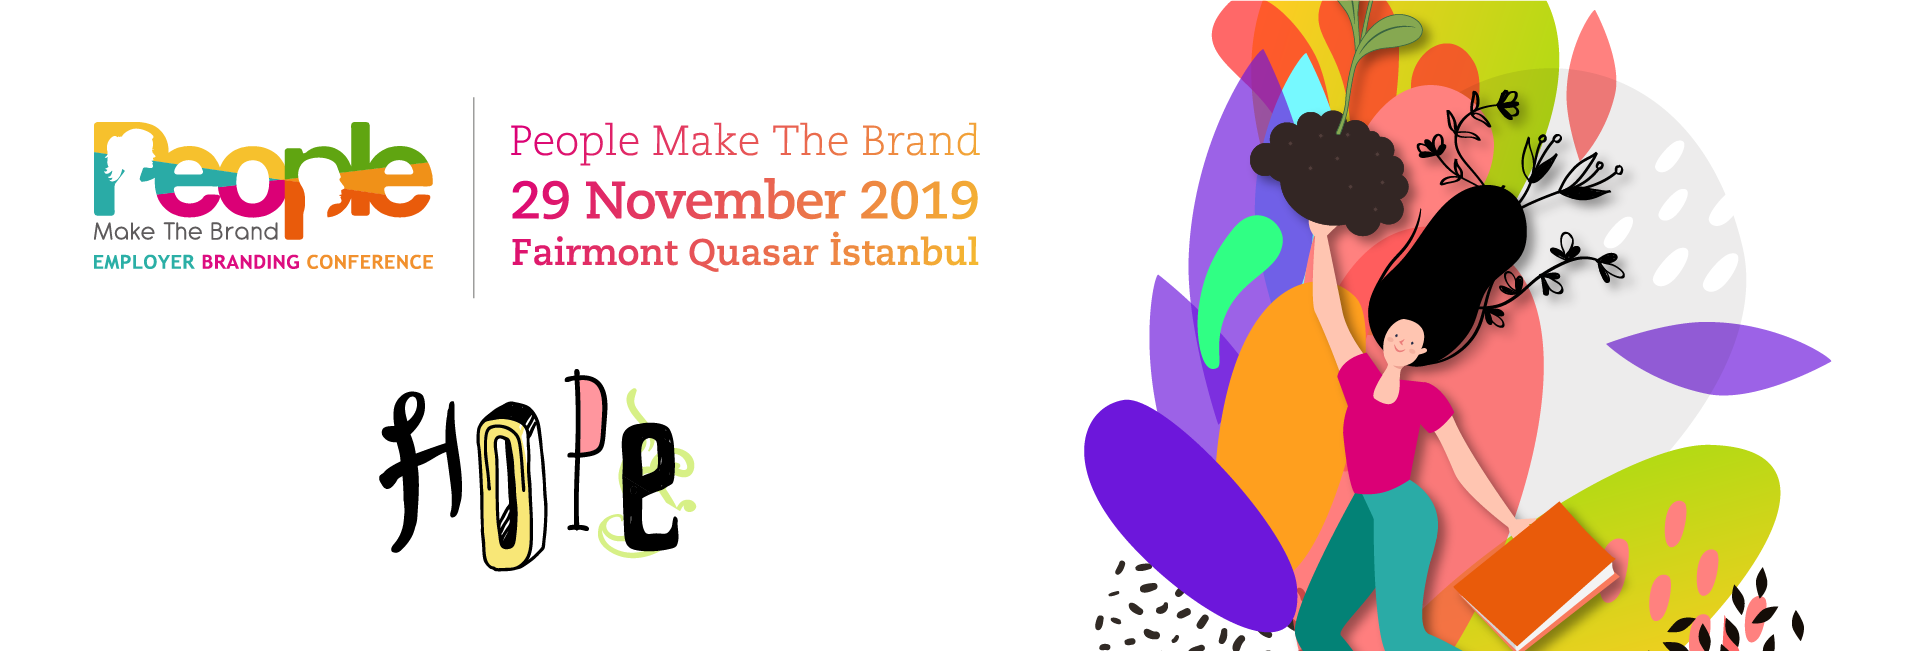 People Make The Brand - Employer Branding Conference